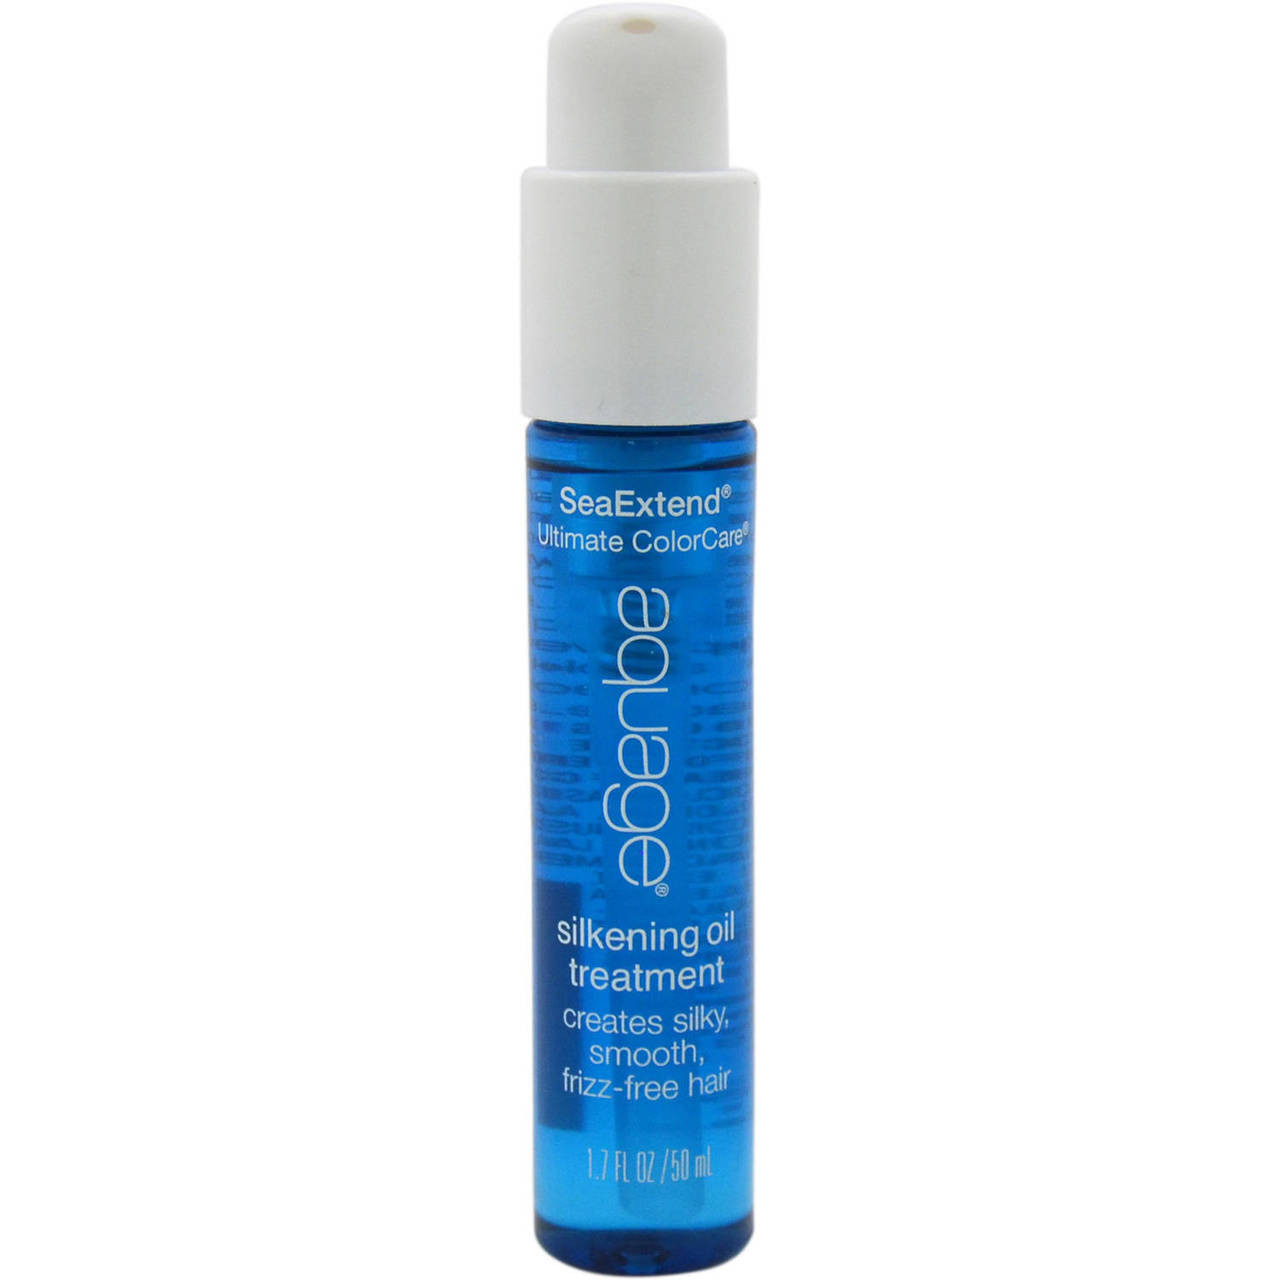 Aquage Silkening Oil Treatment 1.7 oz